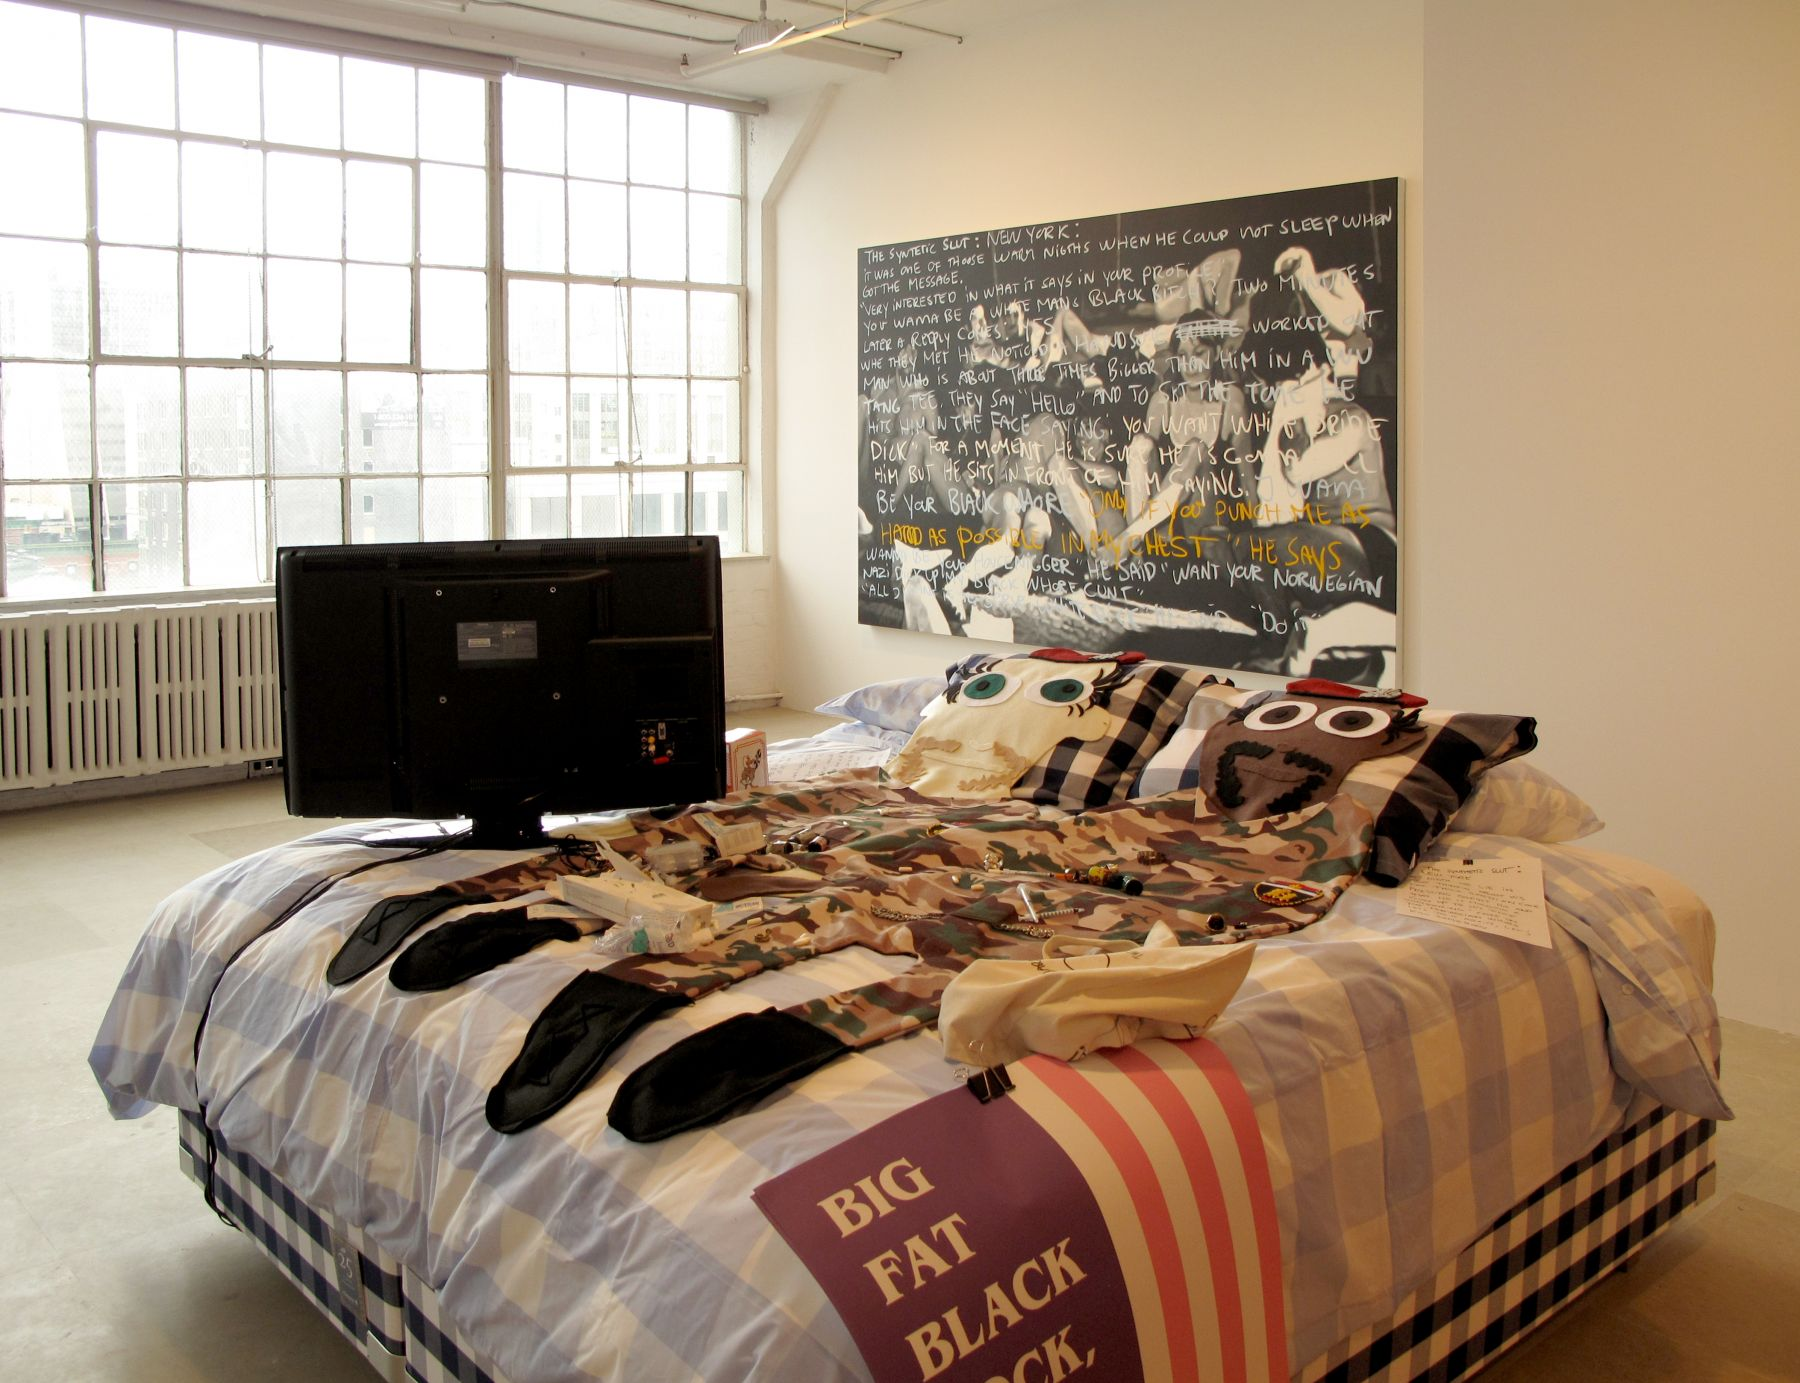 Untitled, 2010, mixed media, 52 x 90 x 84 inches, Installation view, The Synthetic Slut: A Novel by Bjarne Melgaard, Greene Naftali, New York, 2010